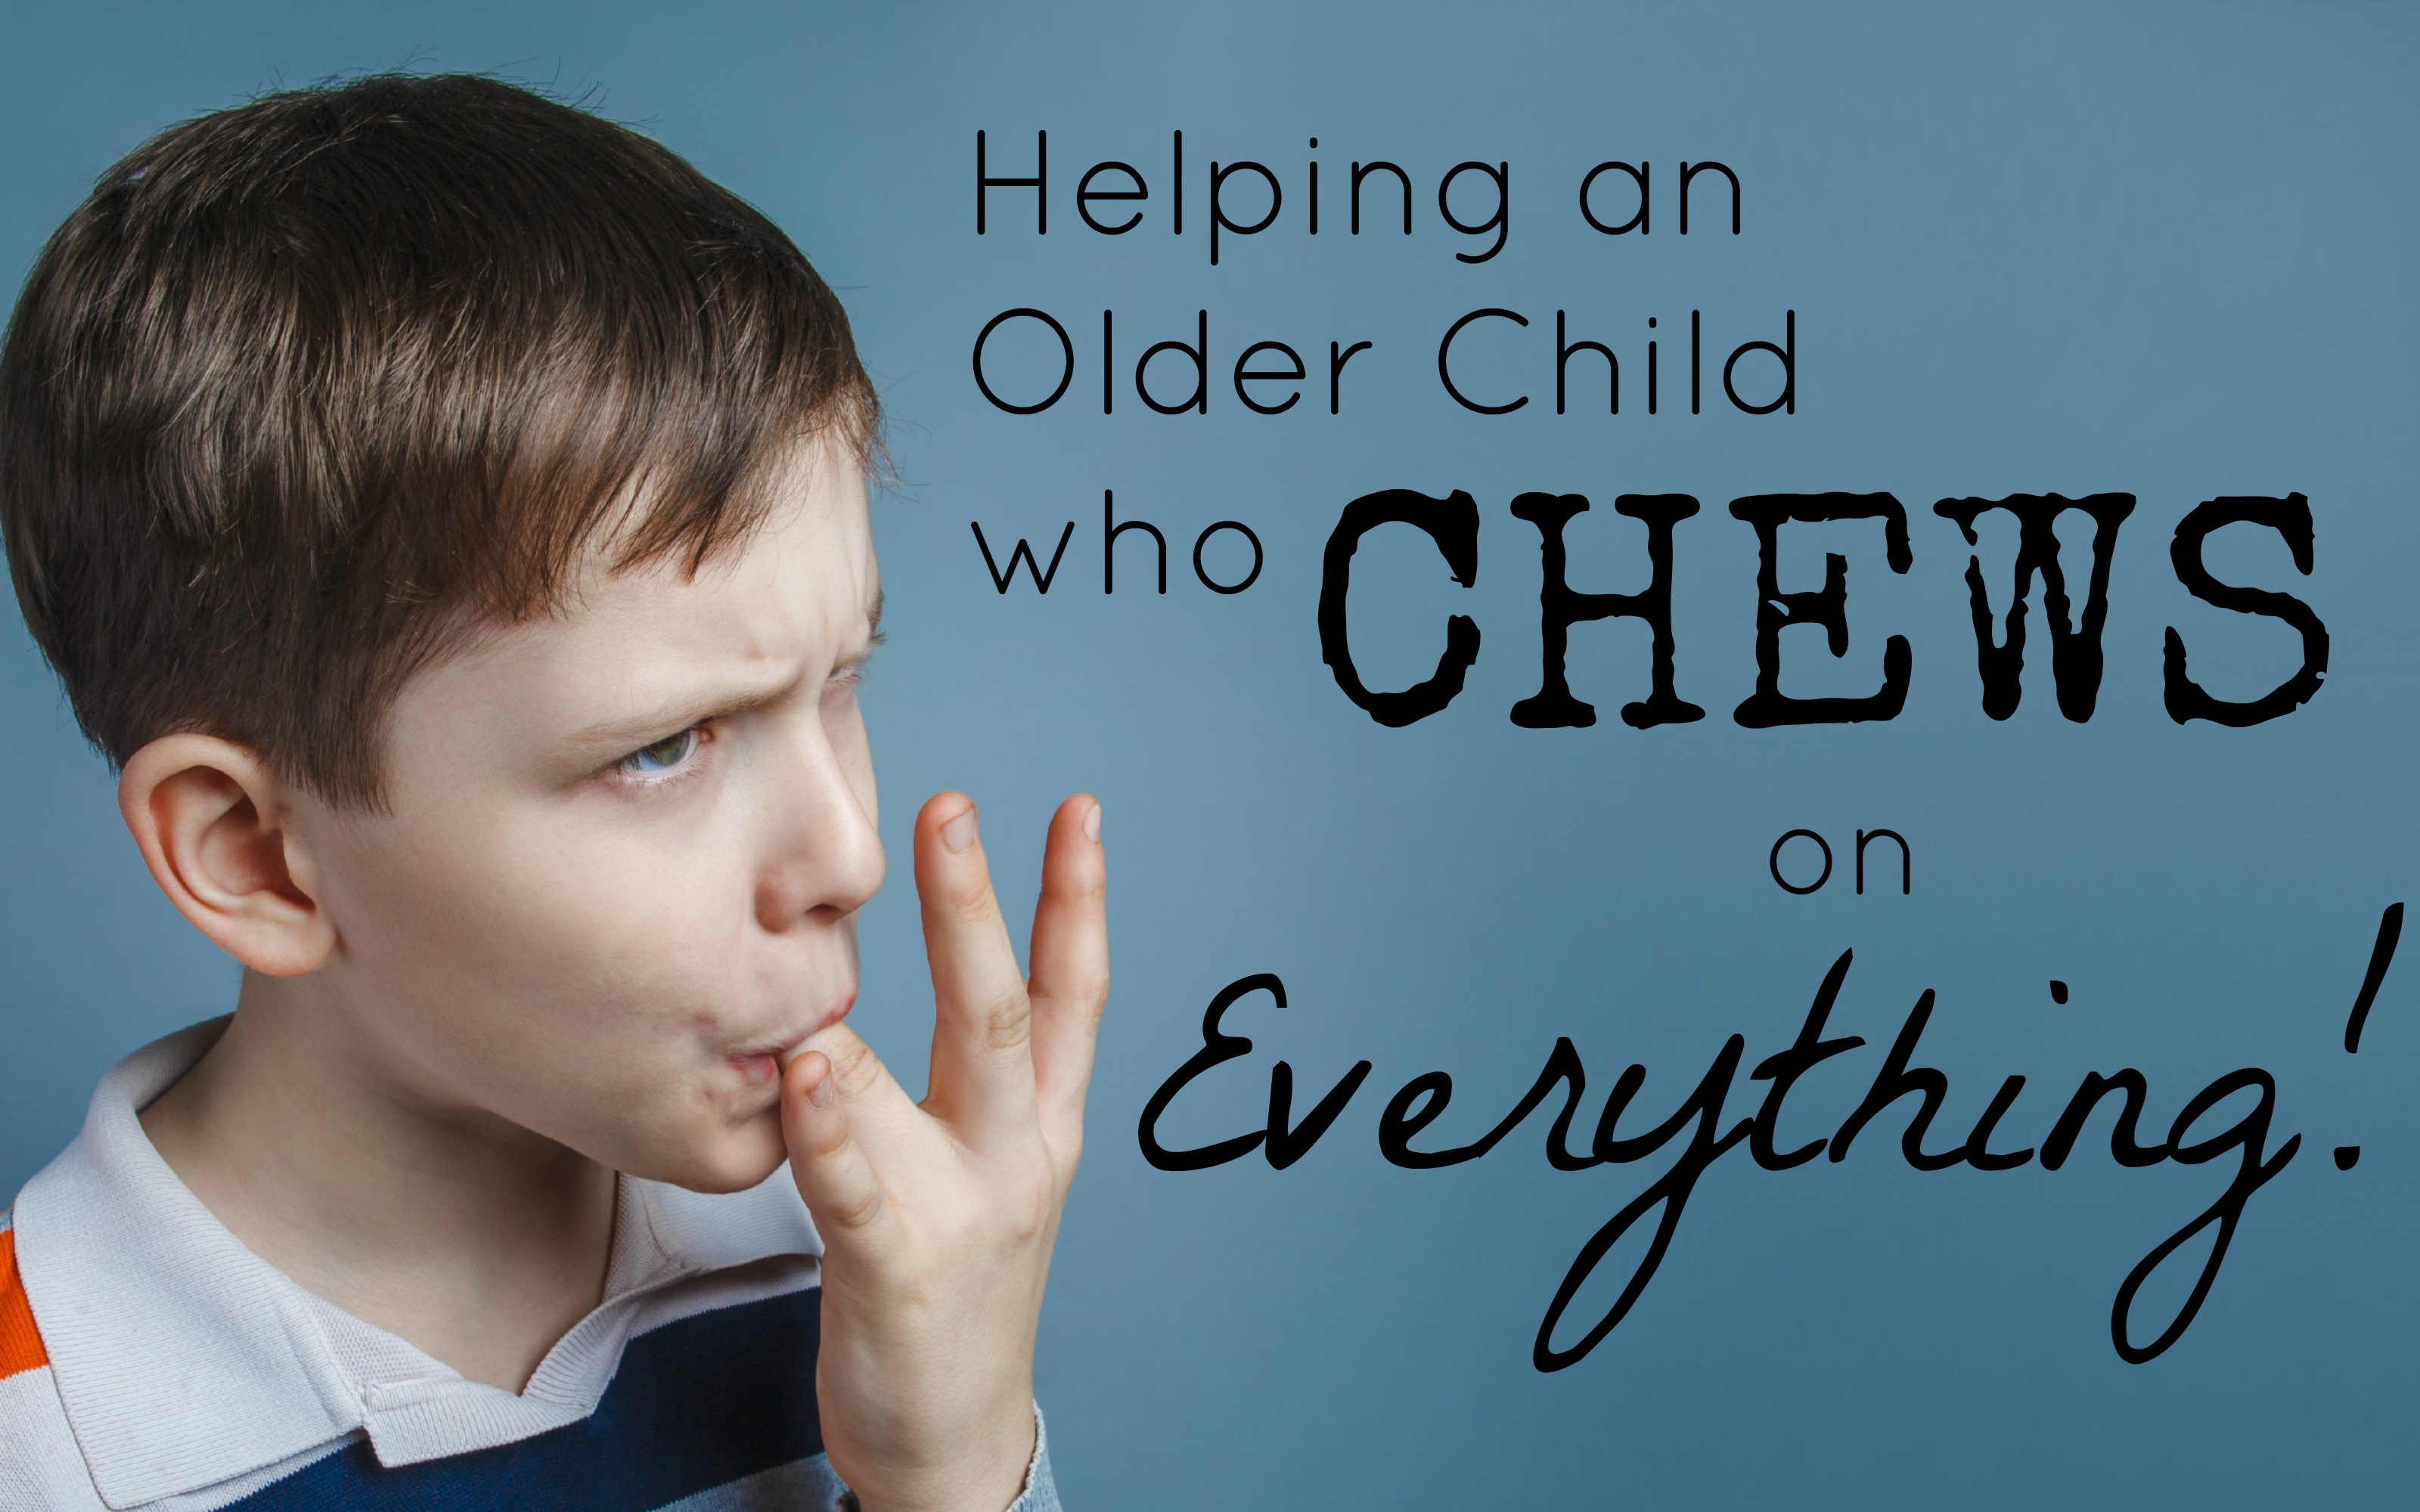 Helping an Older Child who Chews on Everything